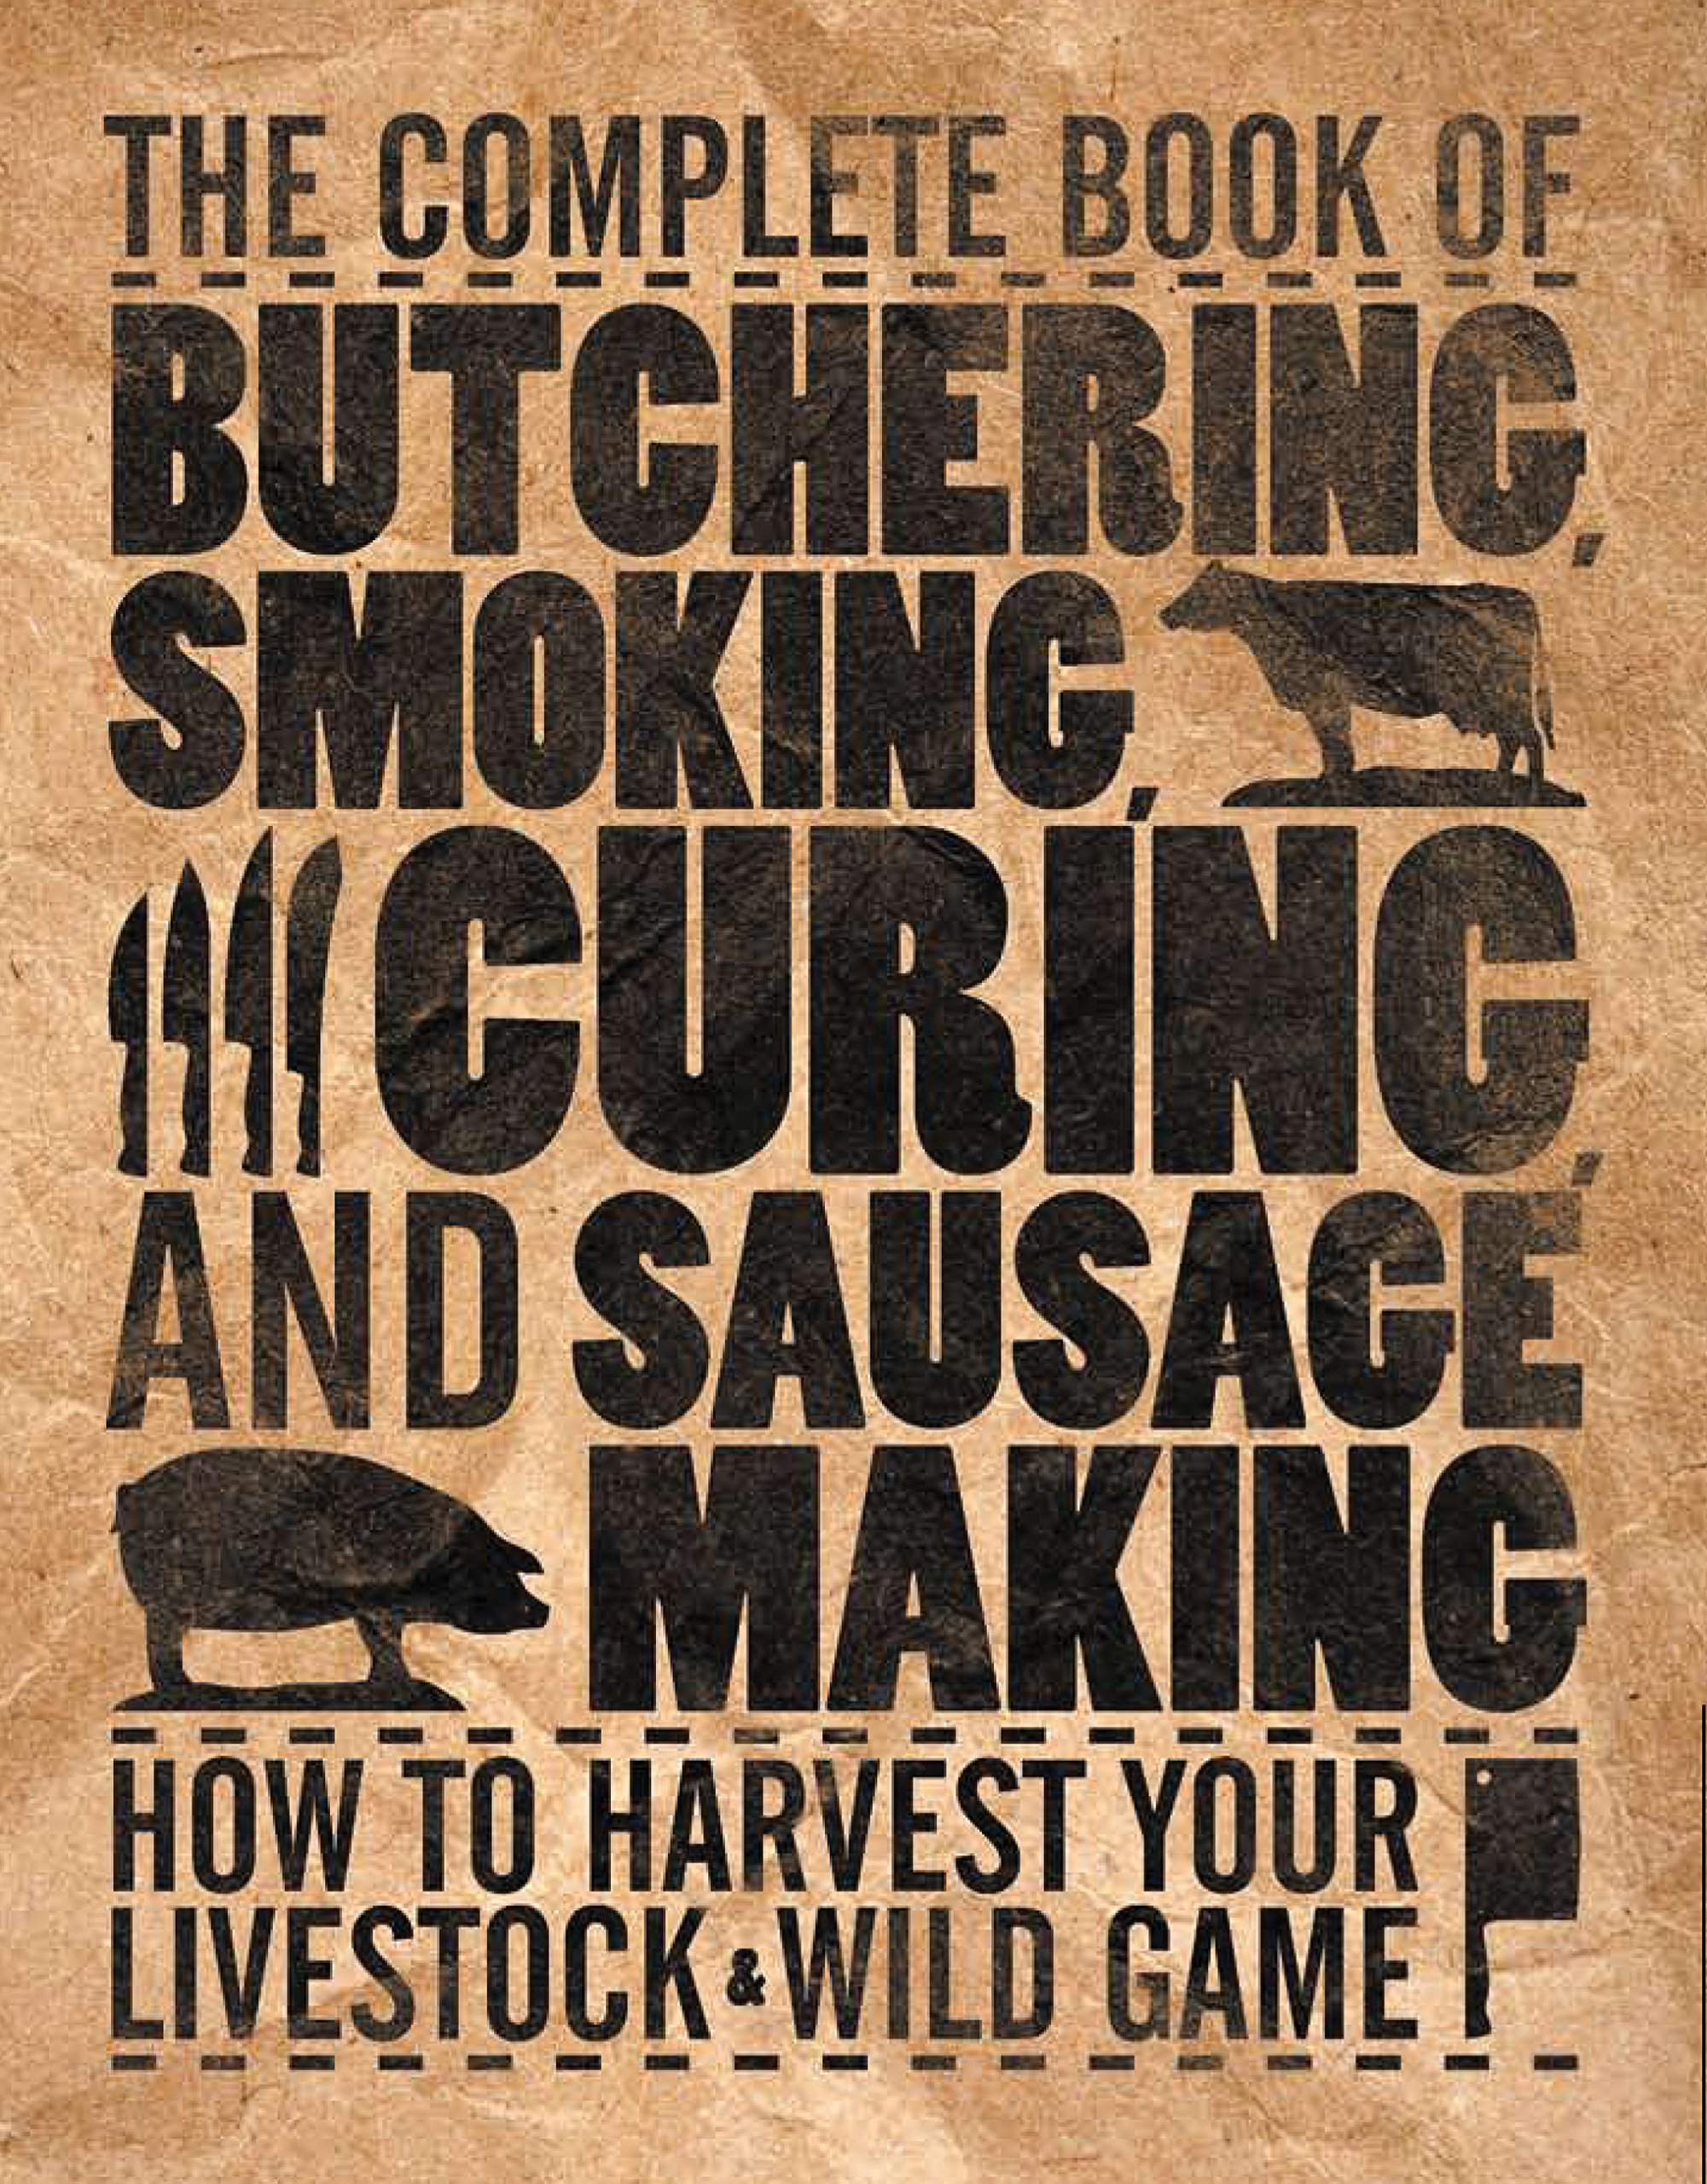 The Complete Book Of Butchering Smoking Curing And Sausage Making  How To Harvest Your Livestock And Wild Game  Complete Meat